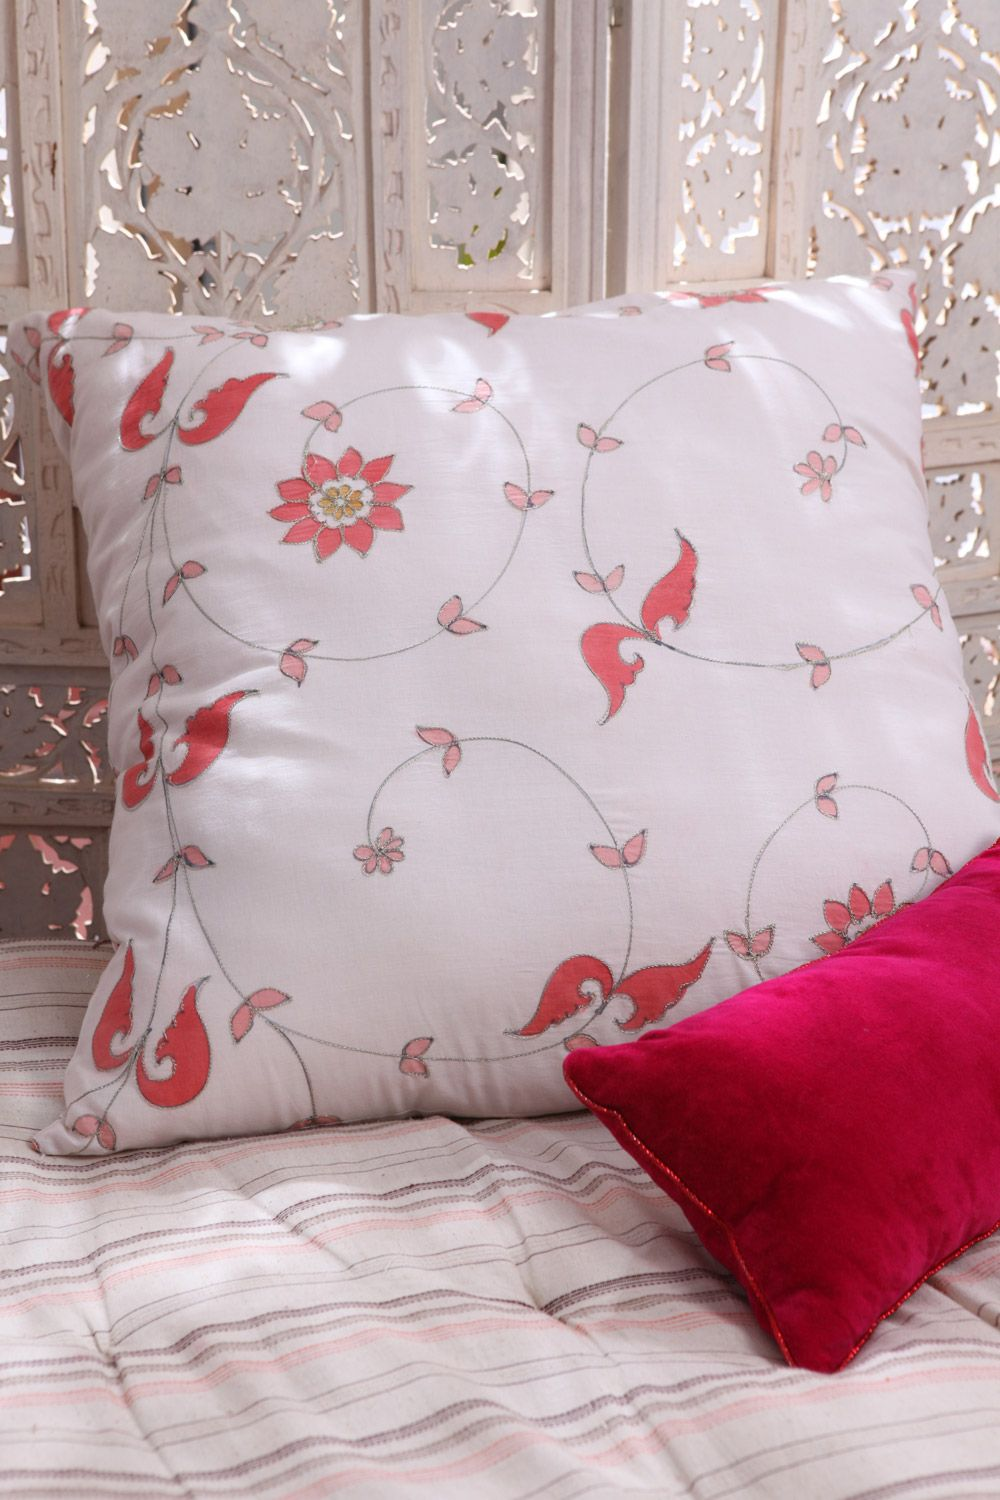 ARABESQUES & GOD'S PILWE CUSHION COVERS Group picture